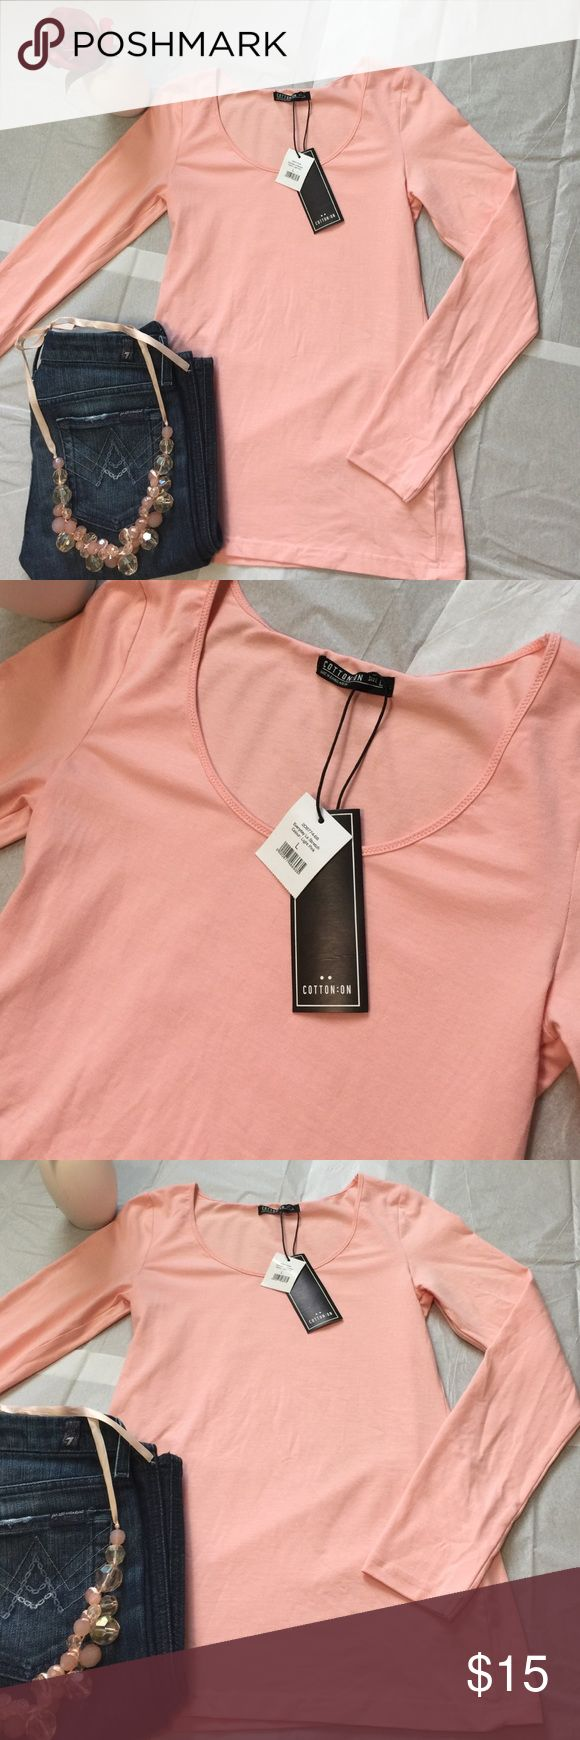 NWT Cotton On Everyday Long Sleeve Stretch-Large NWT Cotton On Everyday Long Sleeve Stretch-Large. Light Pink in color. 95% Cotton 5% Elastane. Perfect to wear by itself or for layering! Fast Shipping! Smoke Free Home! Open to offers on my items or 15% off bundles! 🌸Top 10% Seller!🌸 Cotton On Tops Tees - Long Sleeve